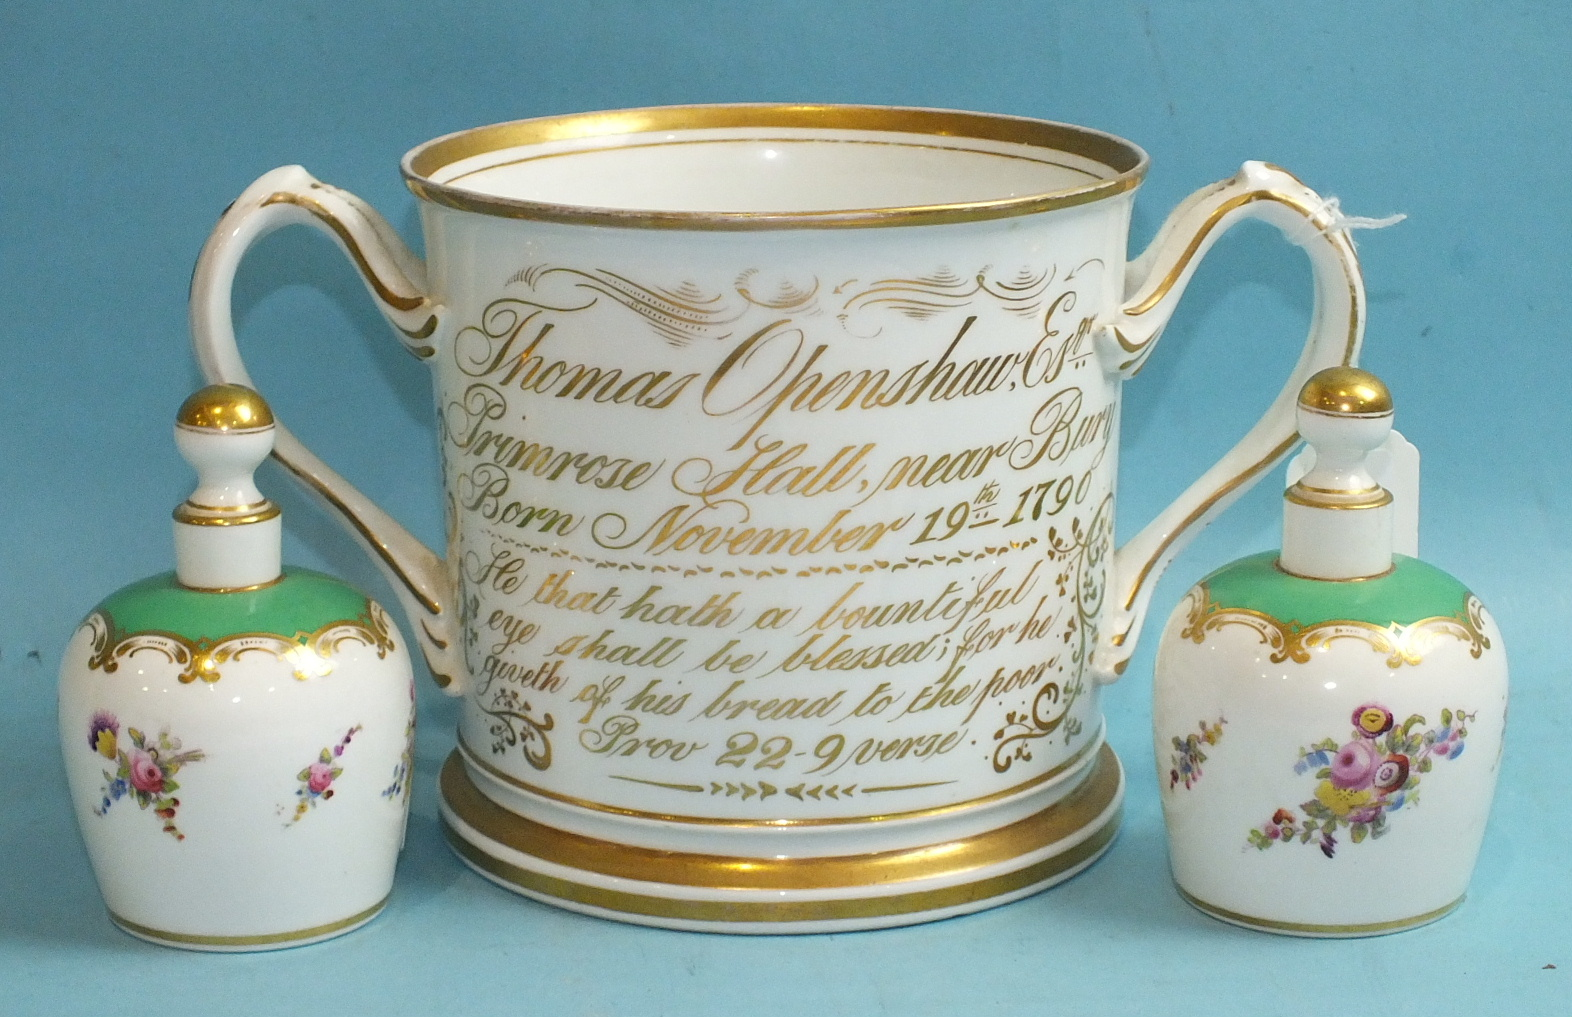 Lot 392 - A 19th century Staffordshire porcelain loving cup commemorating the birth of Thomas Openshaw 1790,